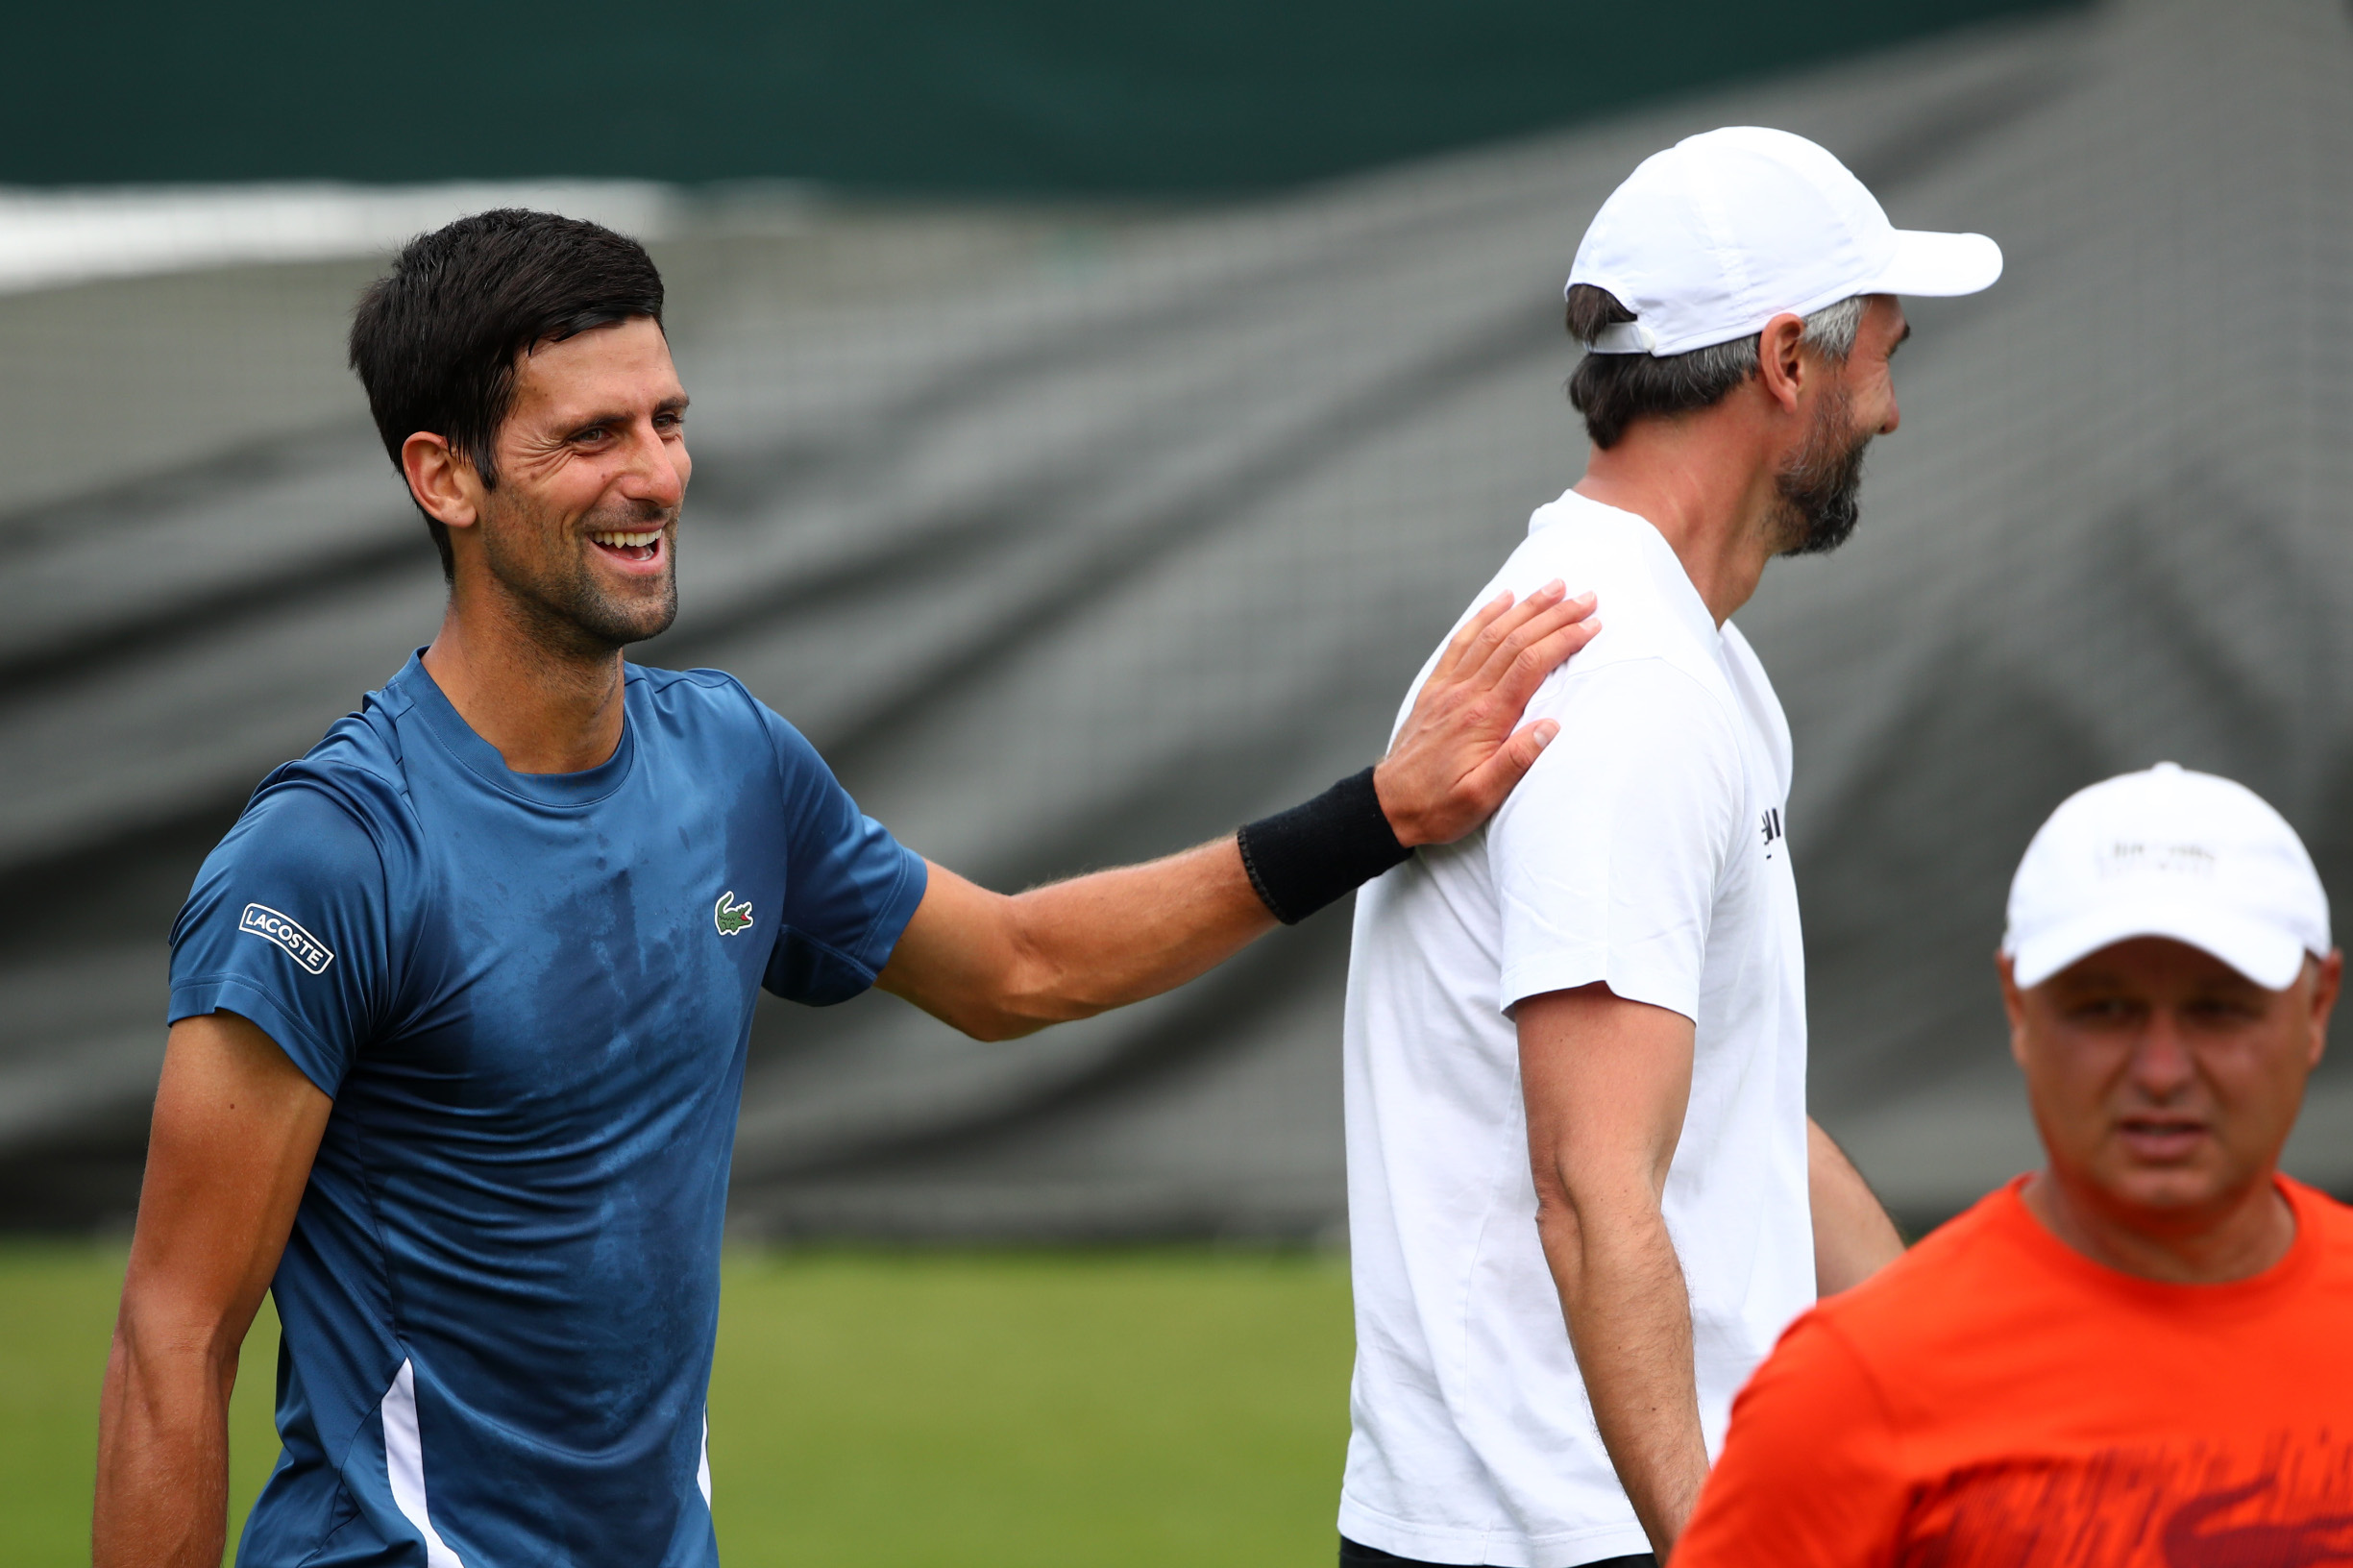 LONDON, ENGLAND - JUNE 30: Novak Djokovic of Serbia (L) speaks with Goran Ivanisevic during a practice session ahead of The Championships - Wimbledon 2019 at All England Lawn Tennis and Croquet Club on June 30, 2019 in London, England. (Photo by Clive Brunskill/Getty Images)